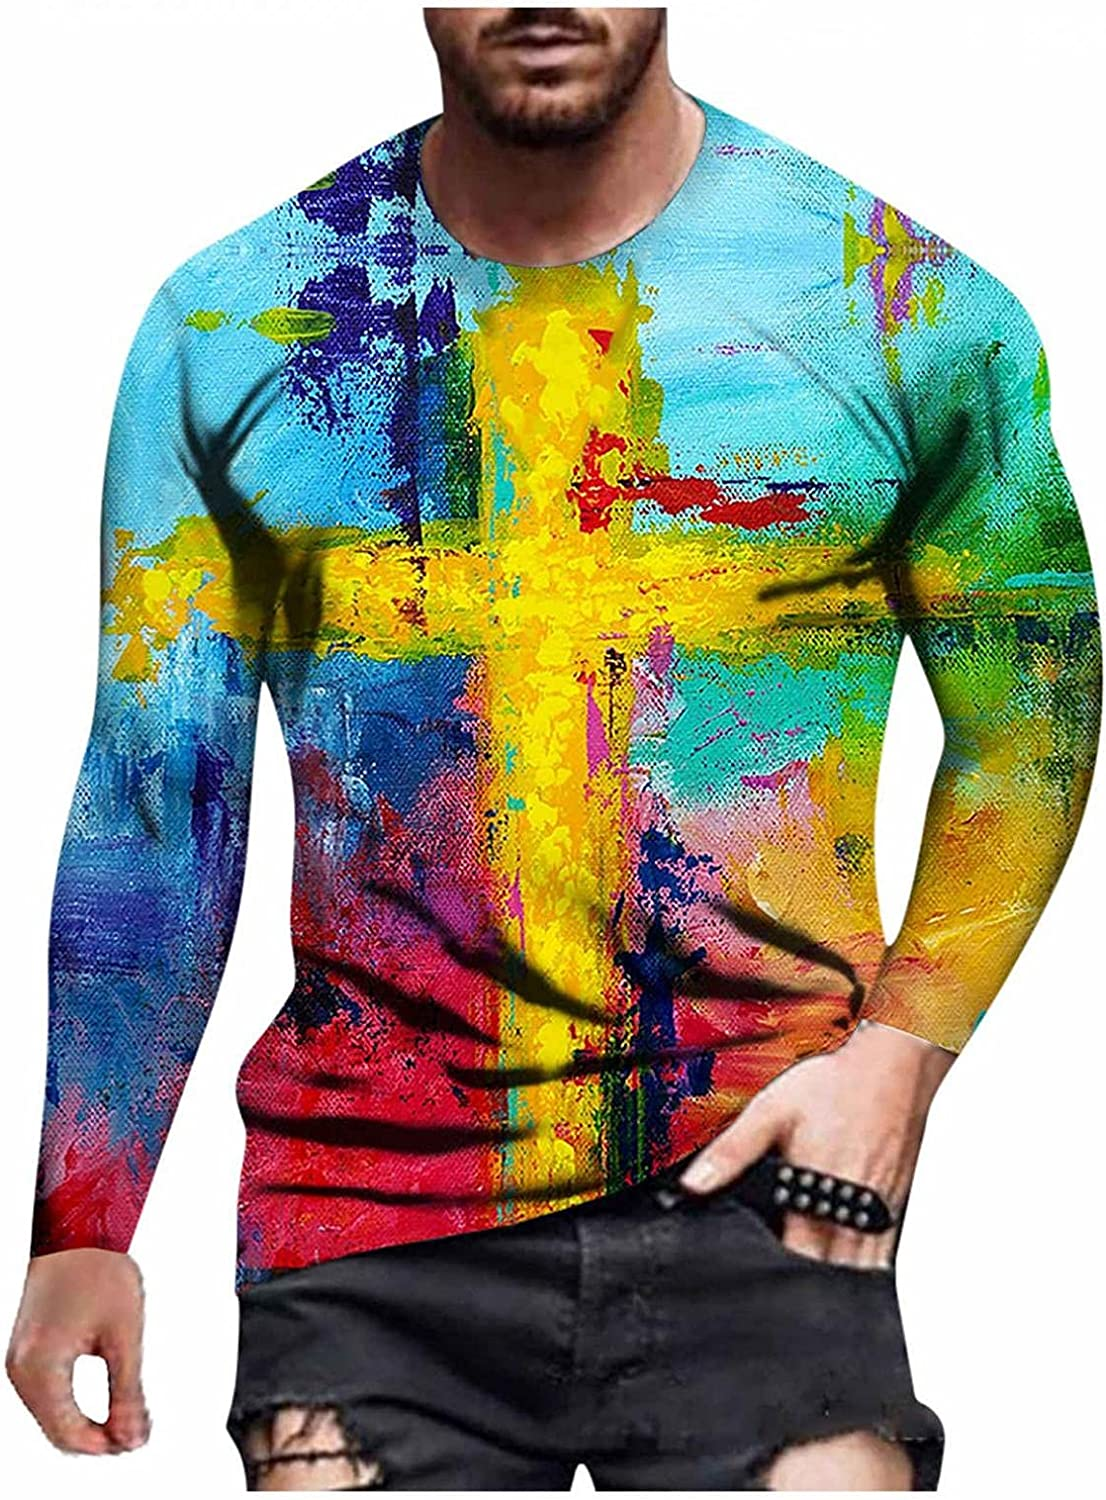 KEEYO Mens Loong Sleeve Workout T-Shirts Fashion Cross Printed Graphic Tee Casual Slim Fit Christian Athletic Muscle Tops